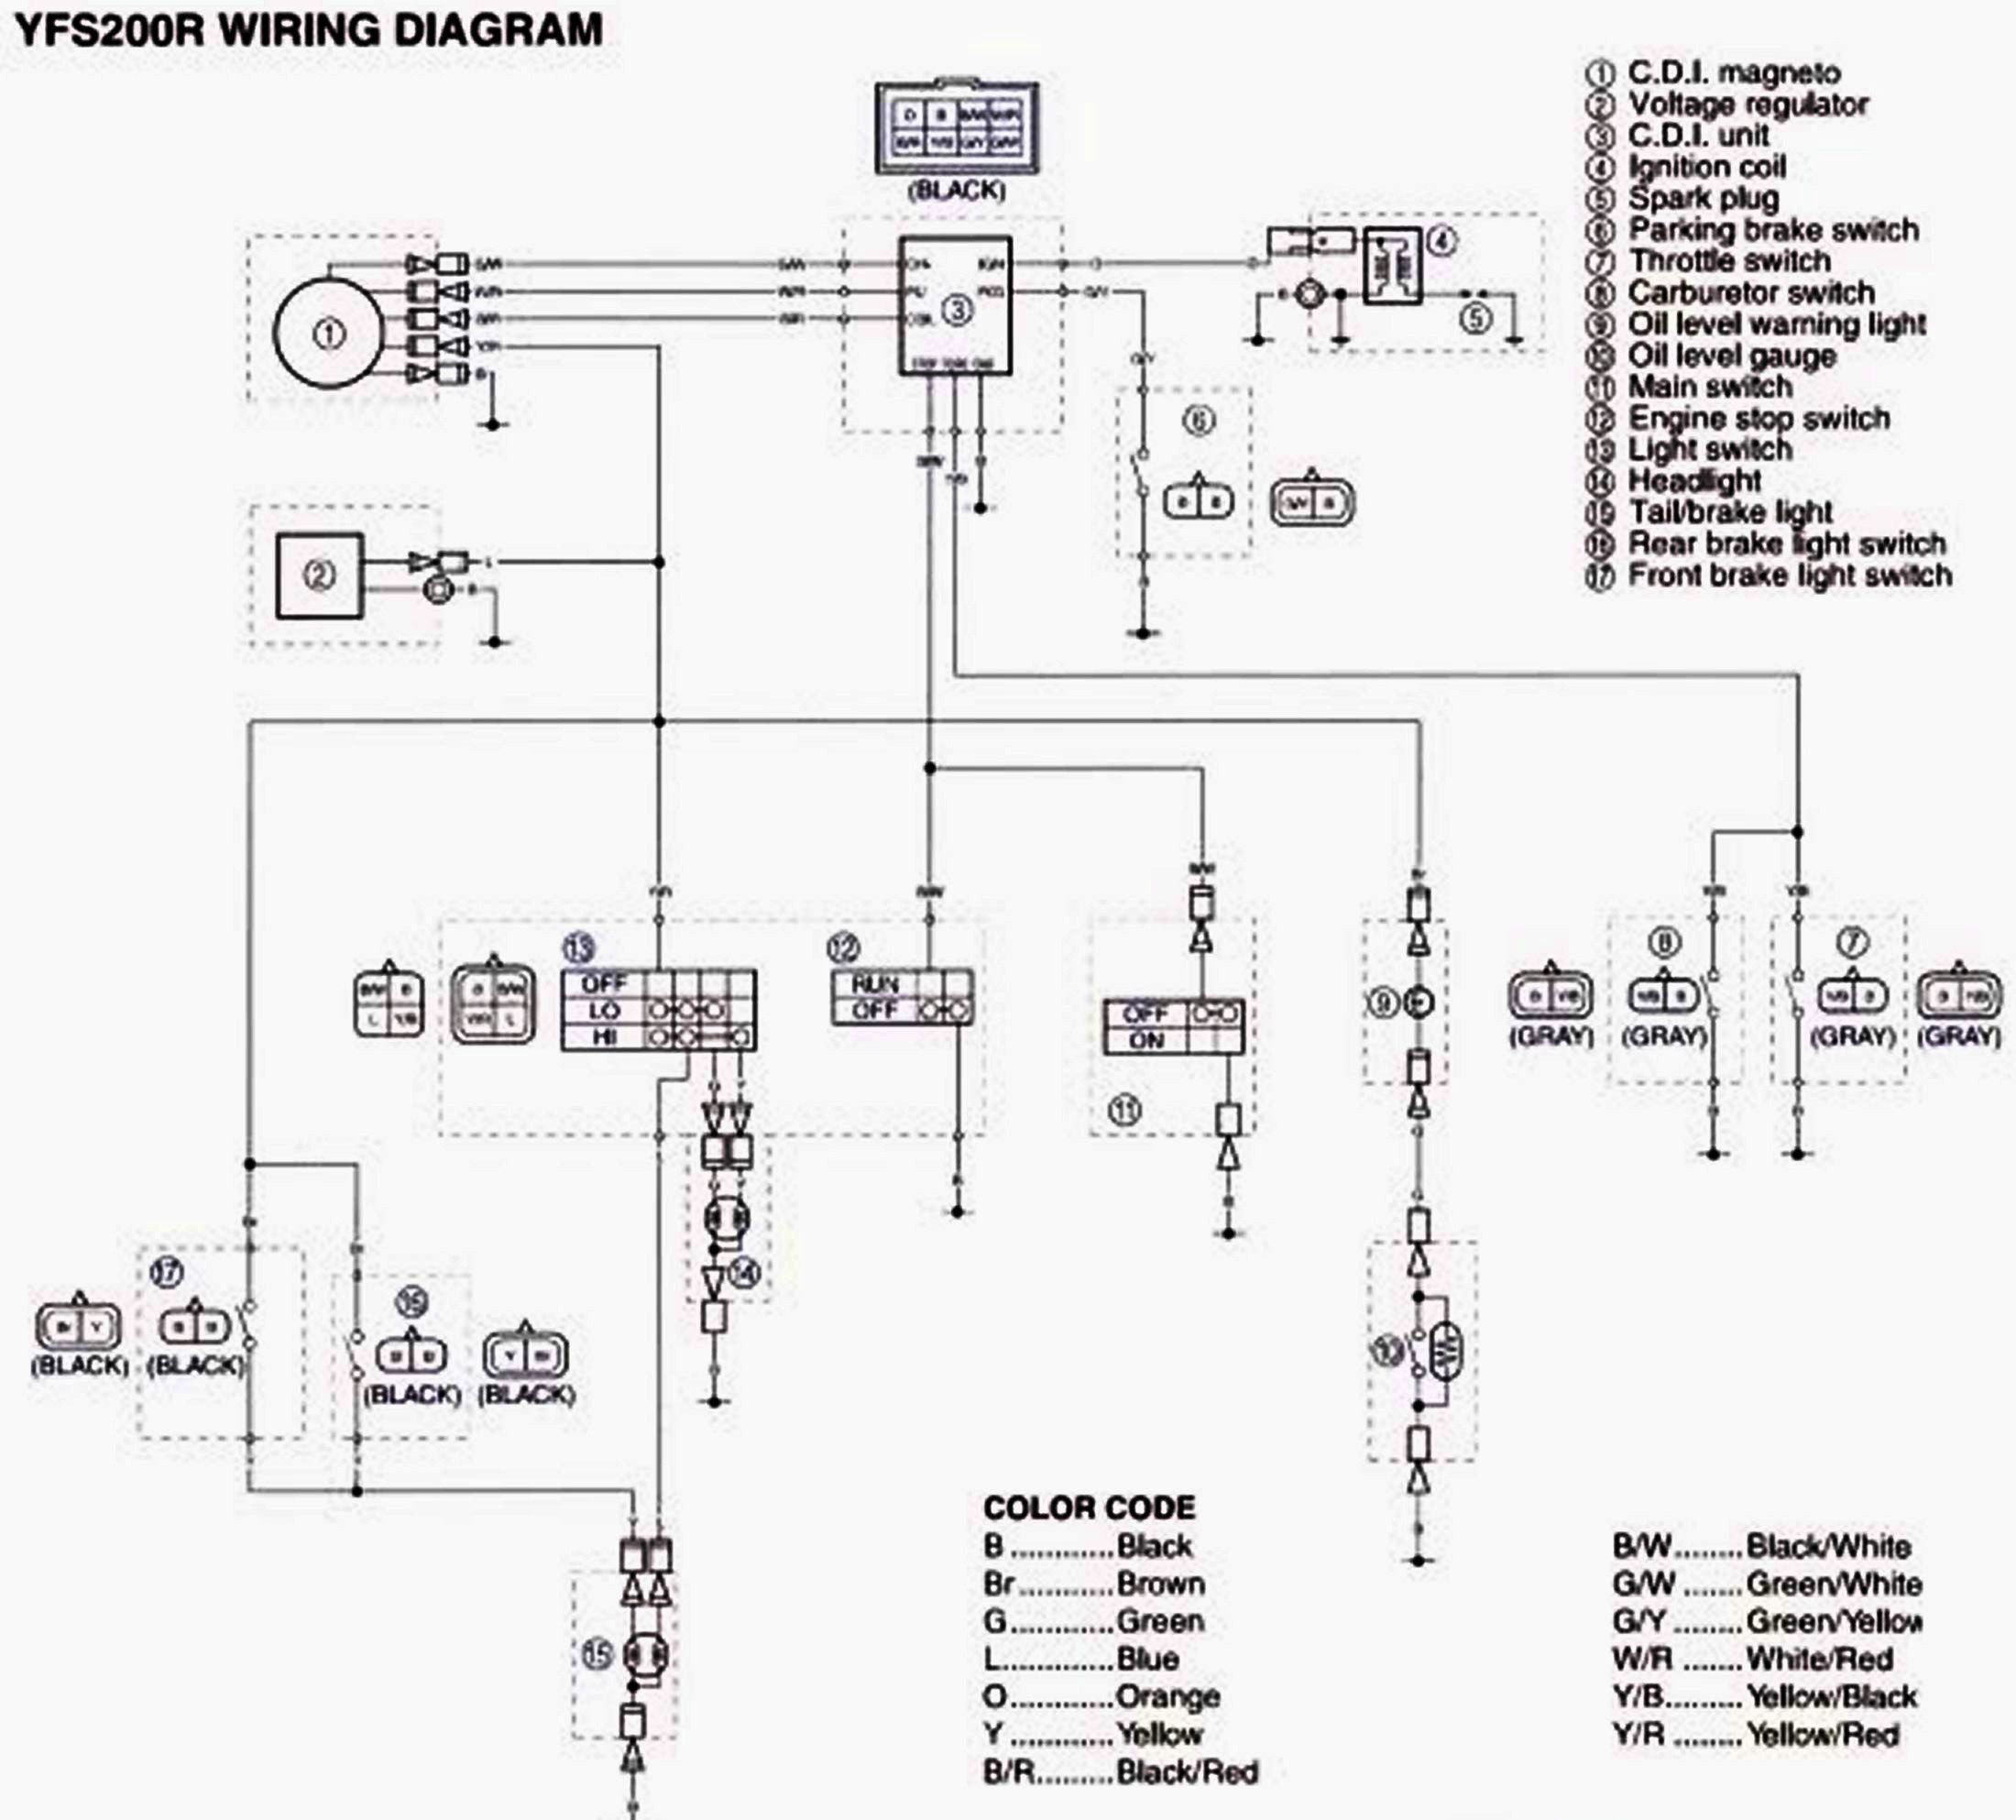 stock wiring diagrams- | blasterforum.com  yamaha blaster forum